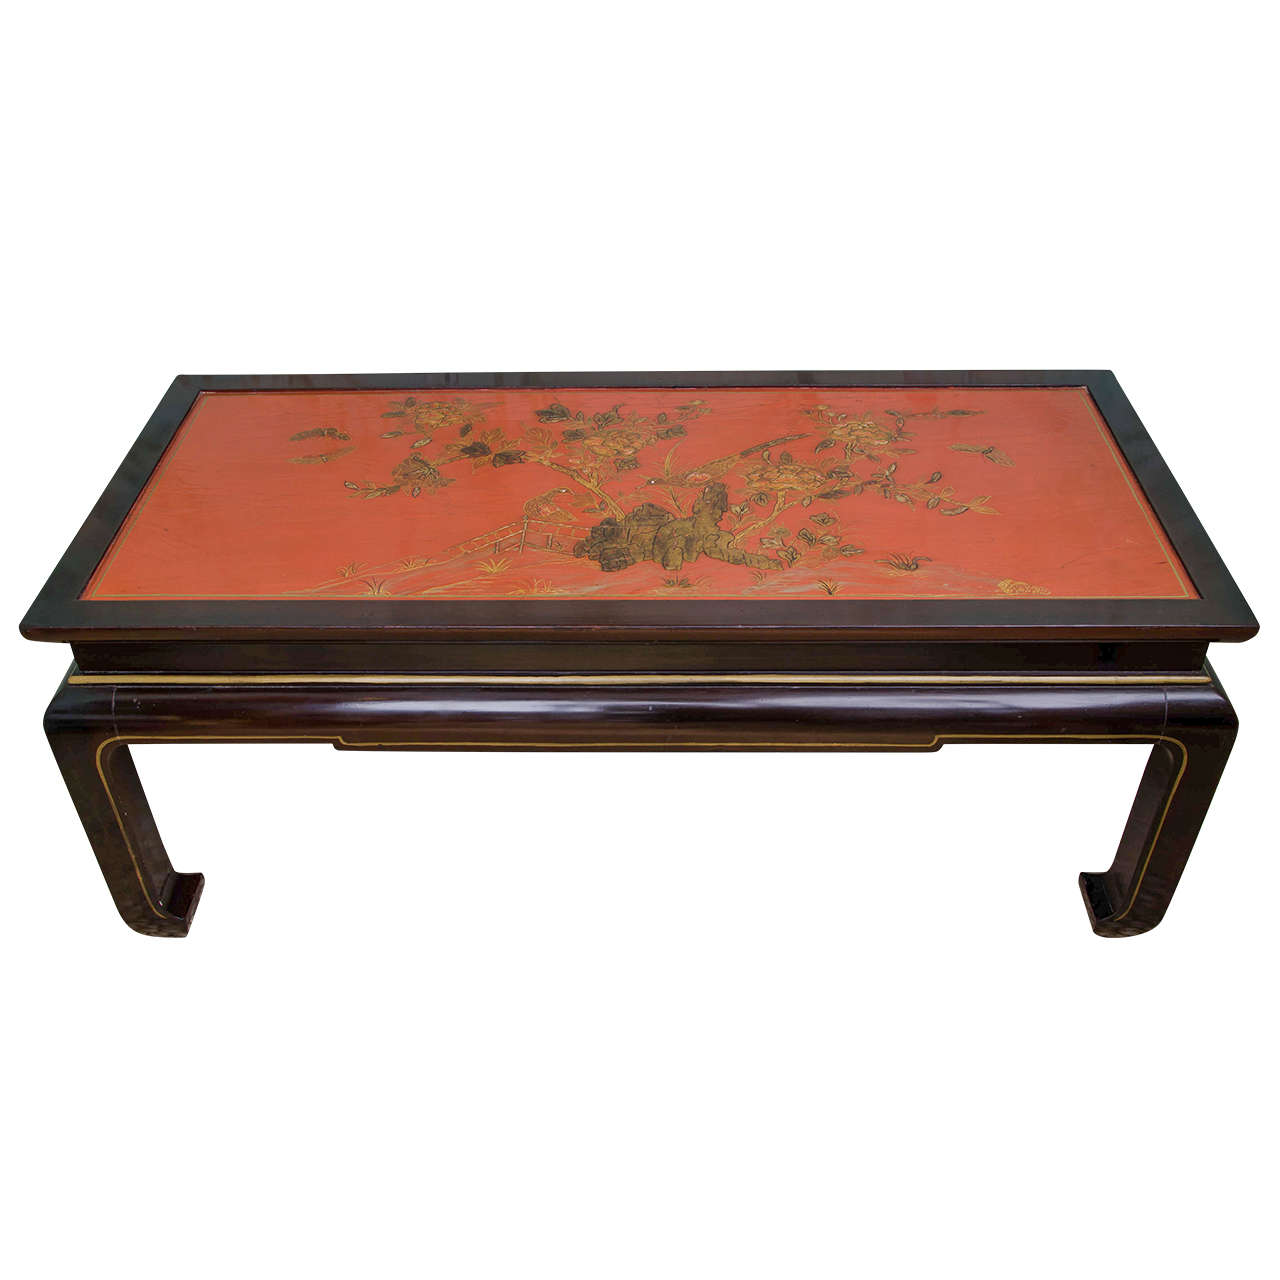 Charming red chinoiserie lacquer coffee table at 1stdibs for Lacquer coffee table